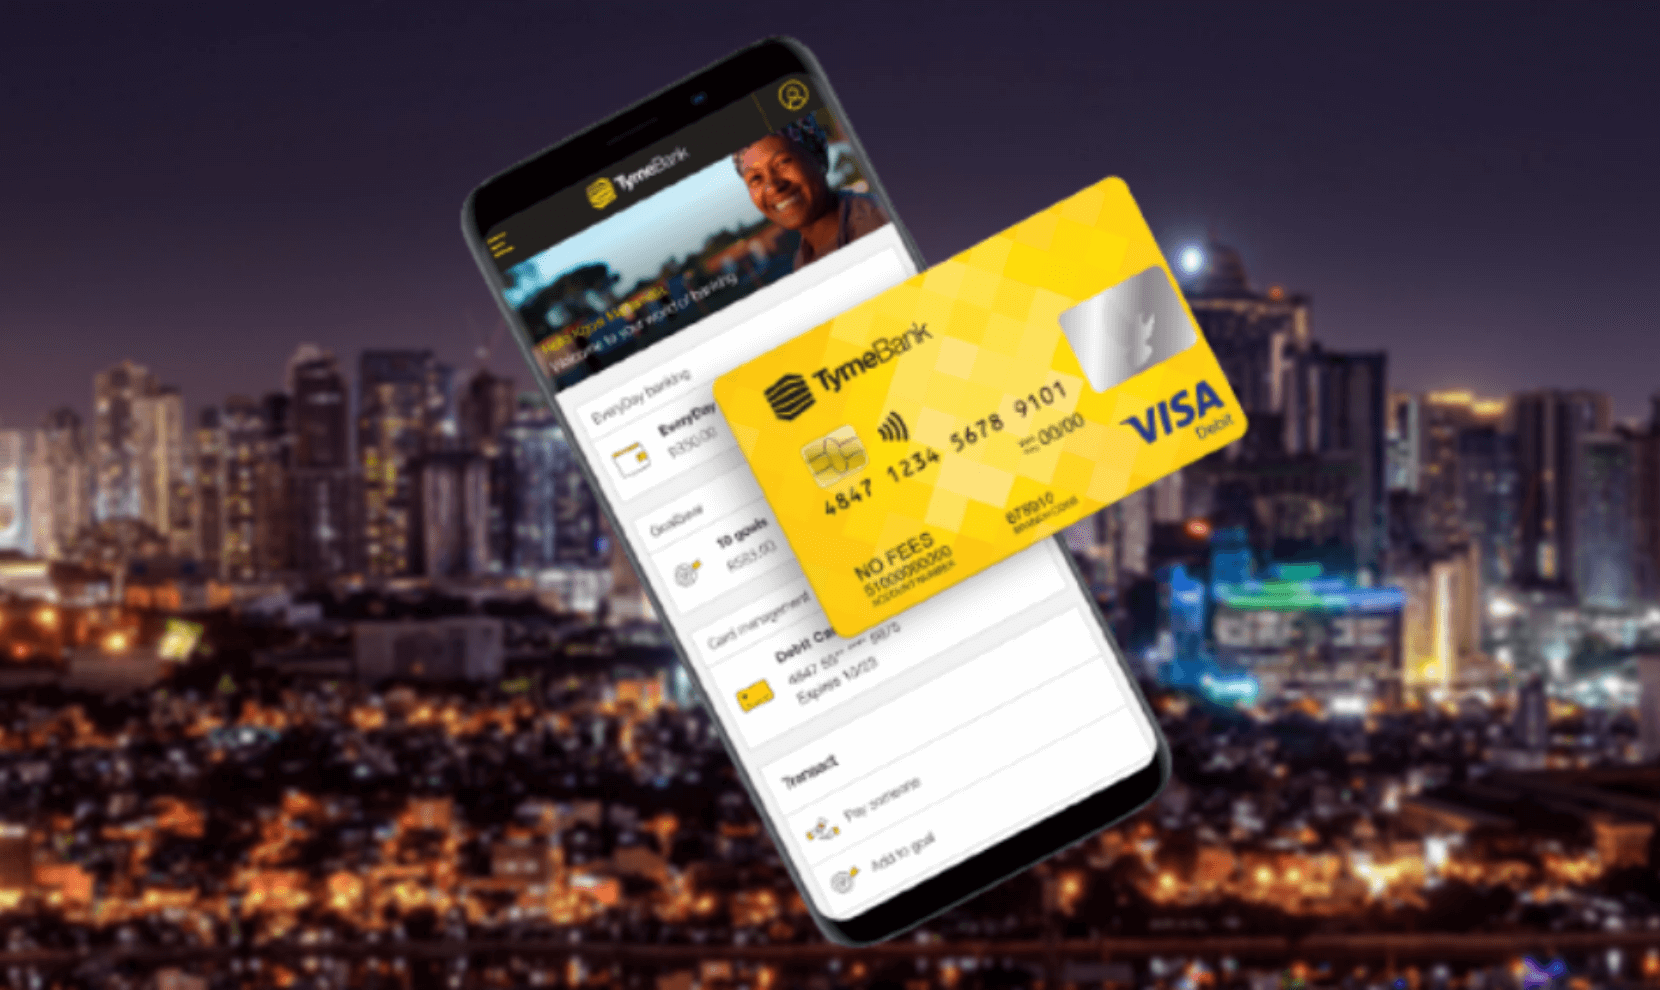 tyme-singapores-digital-bank-raises-110-million-to-apply-for-license-in-the-philippines